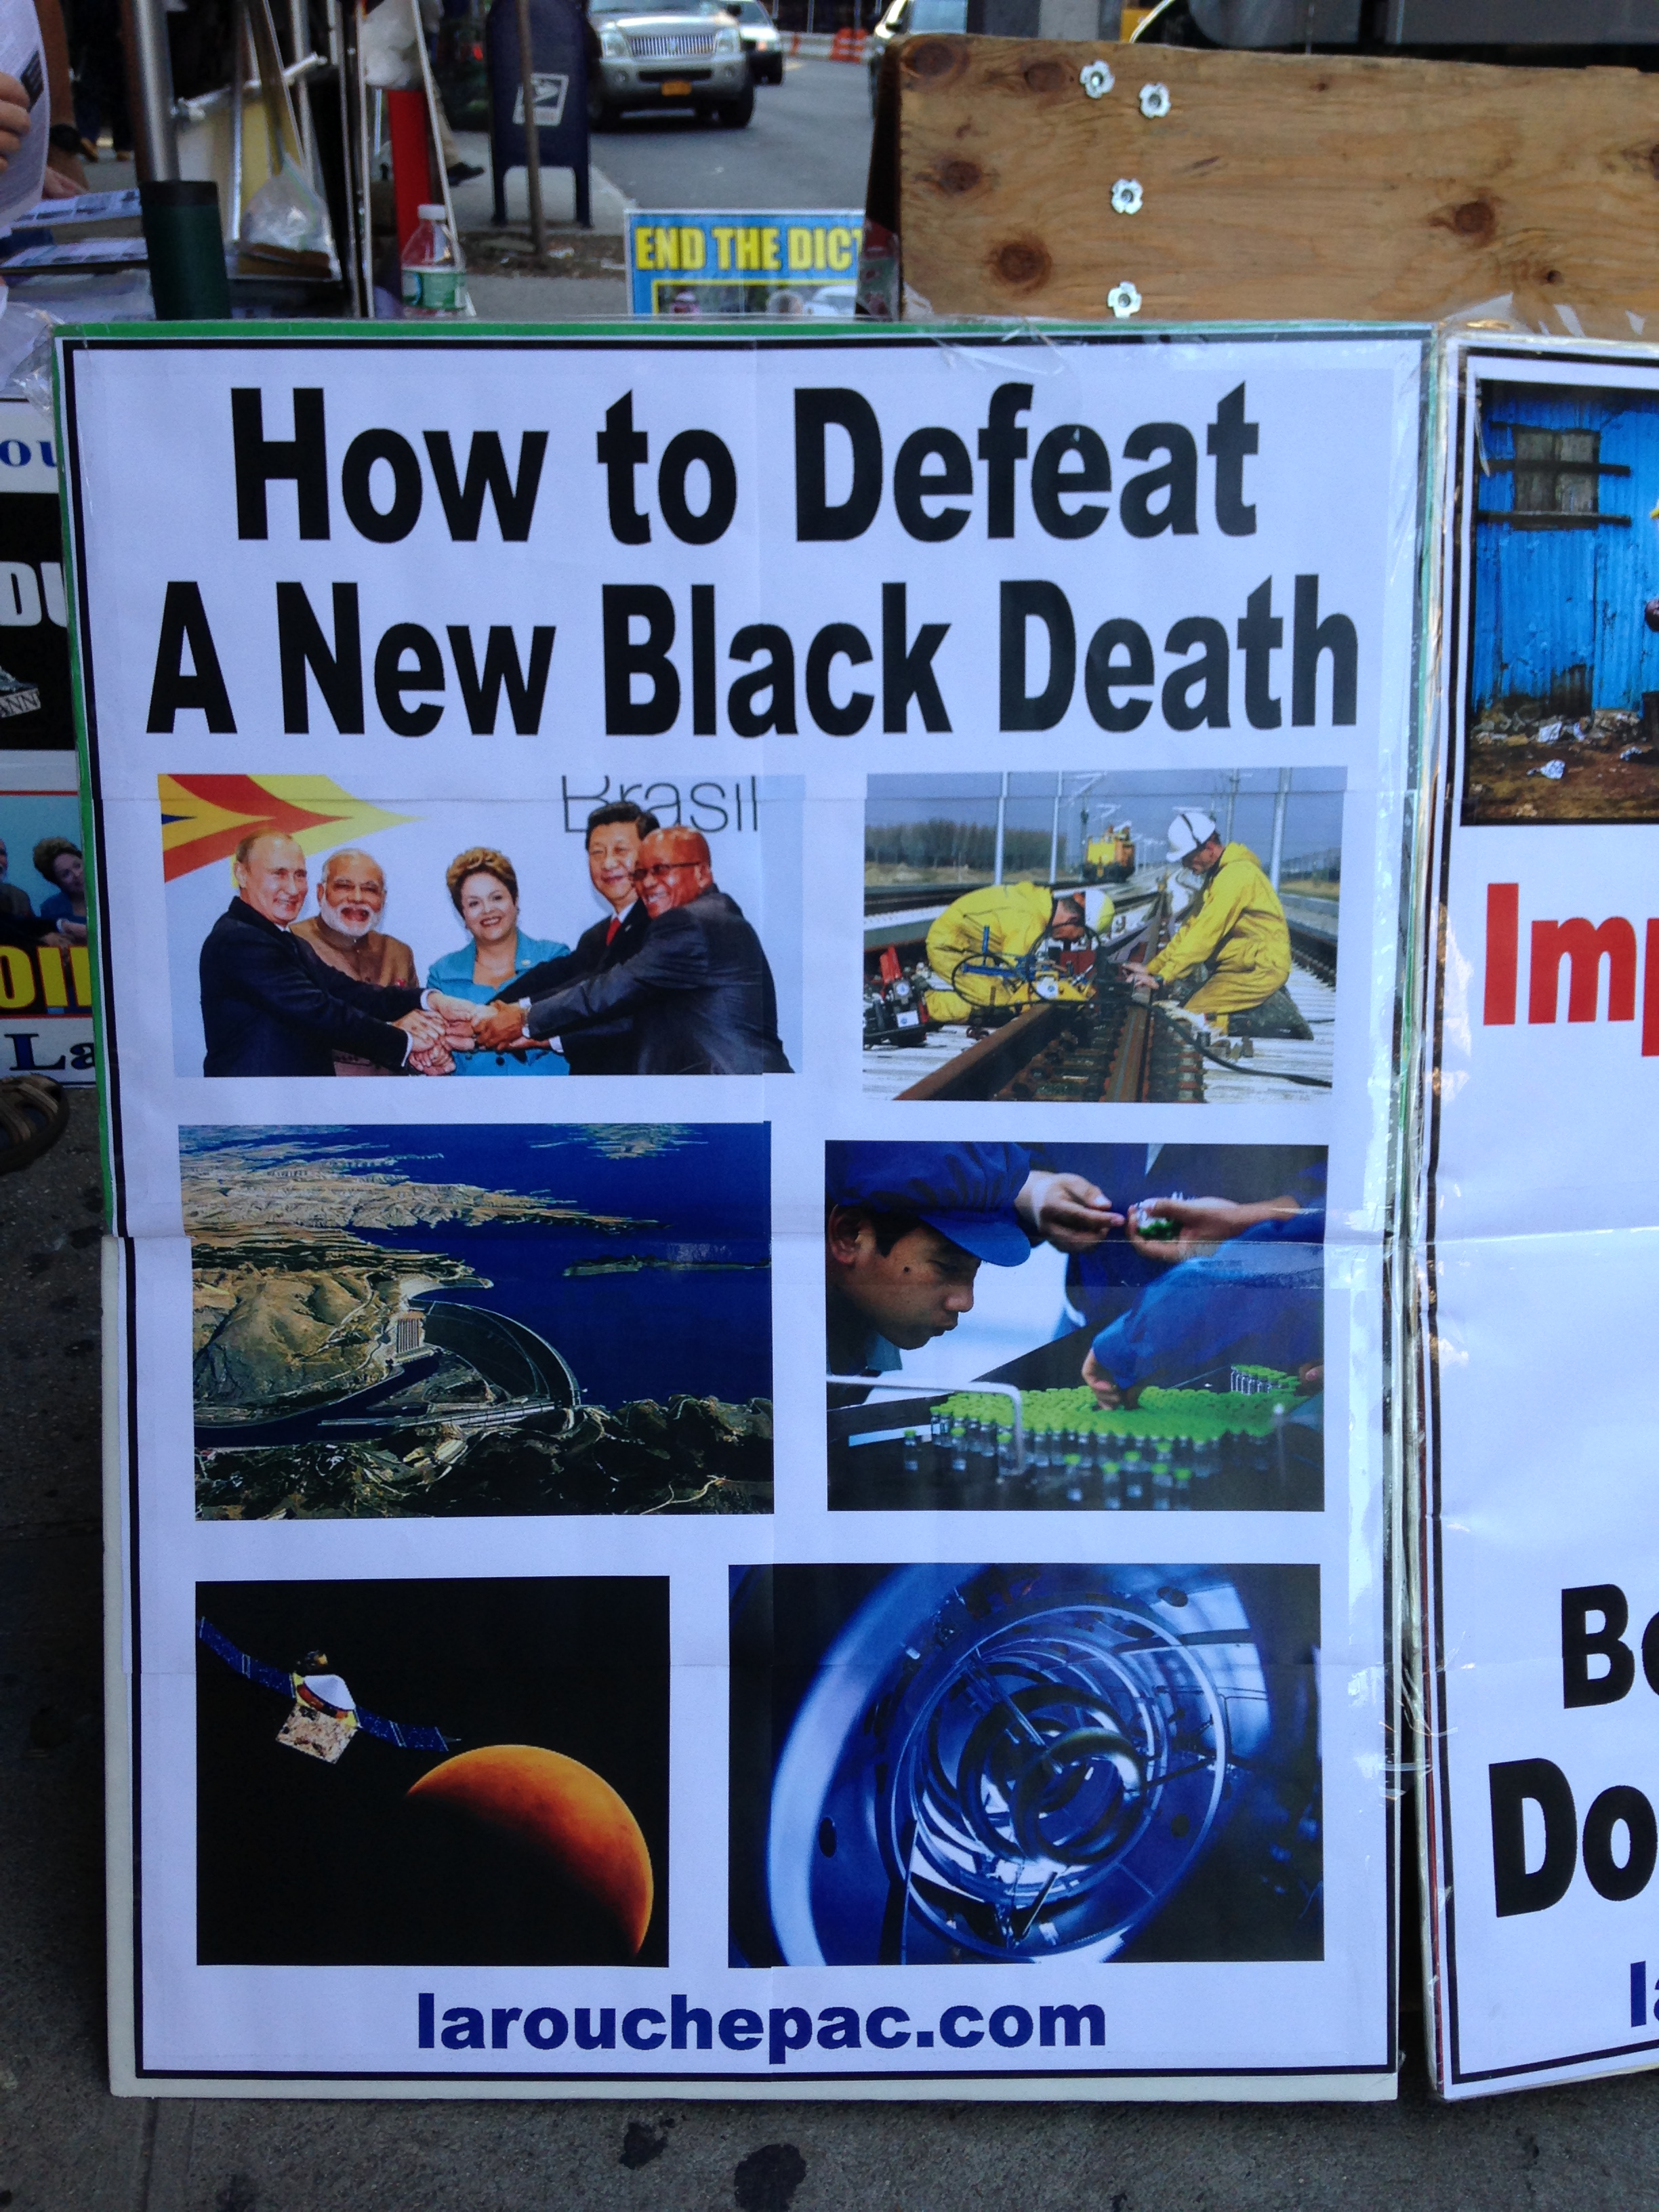 Ebola fear-mongering anti-Obama crazy propaganda outside Columbia